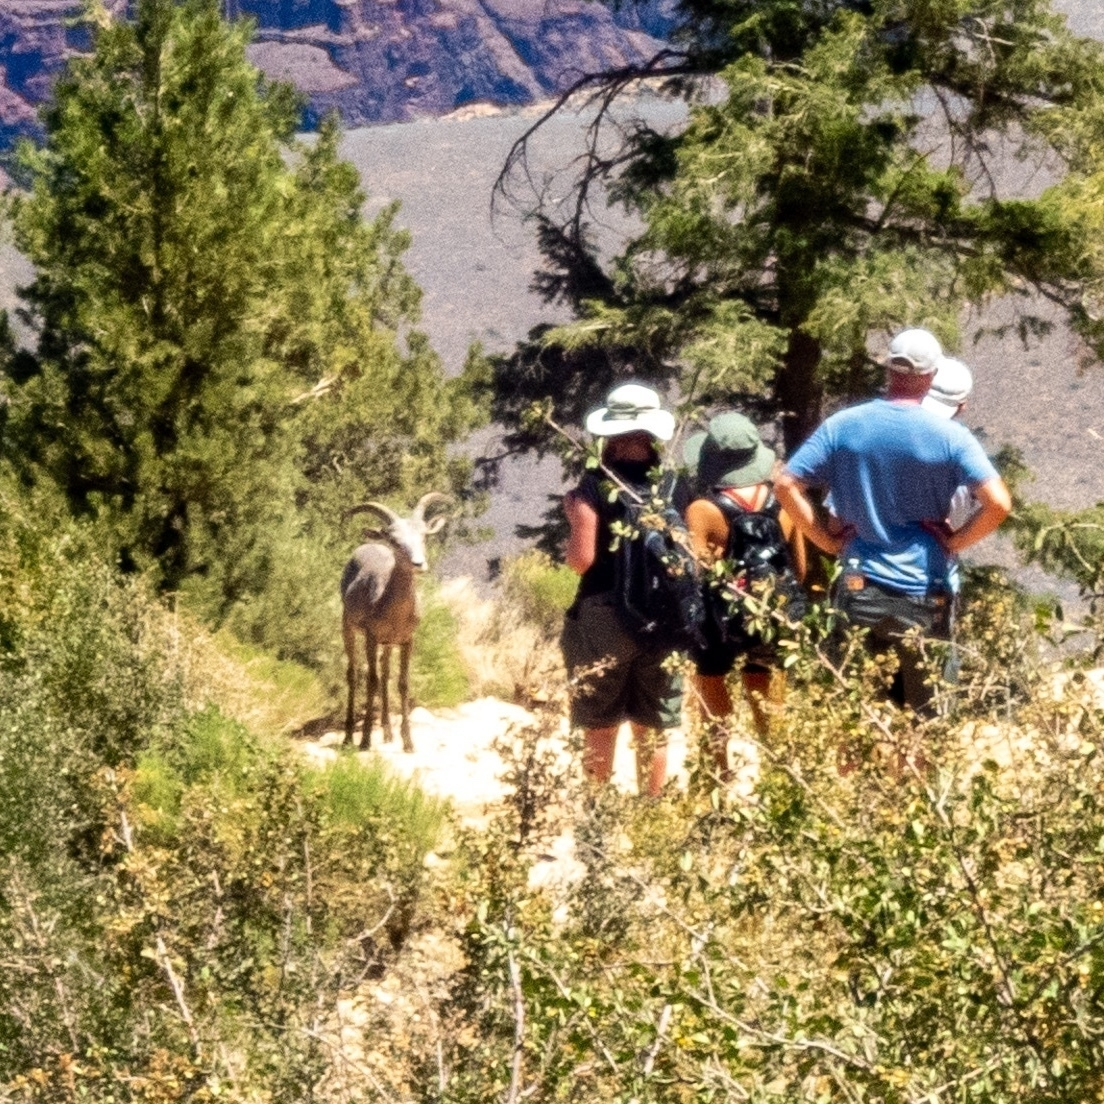 a young big horn sheep on the Trail with some hikers